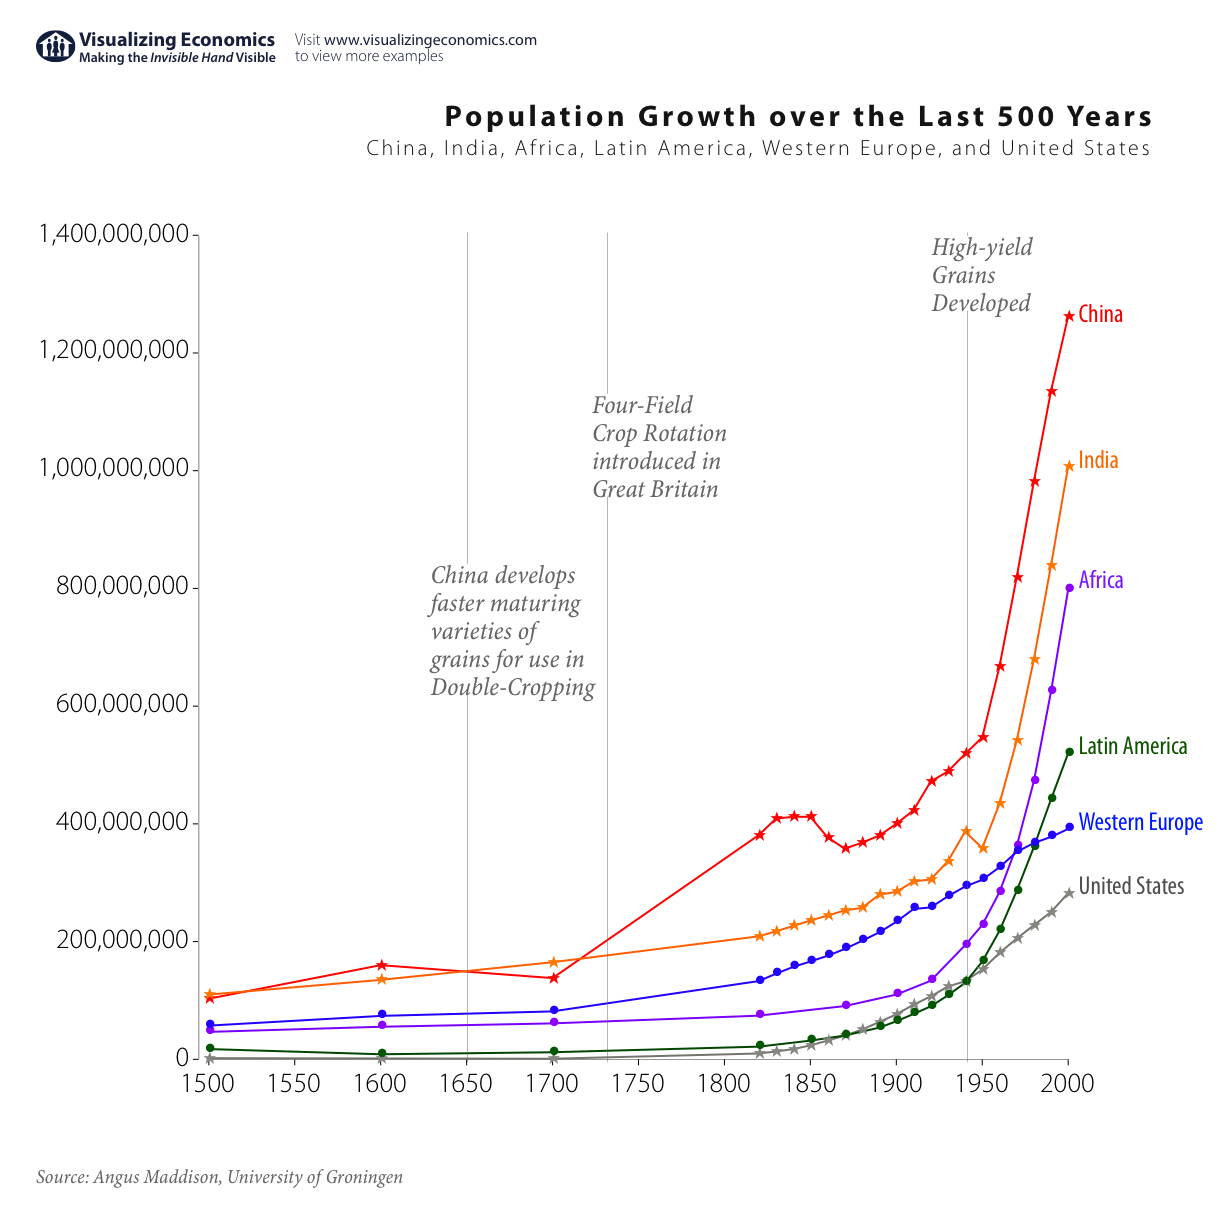 Population growth since 1500